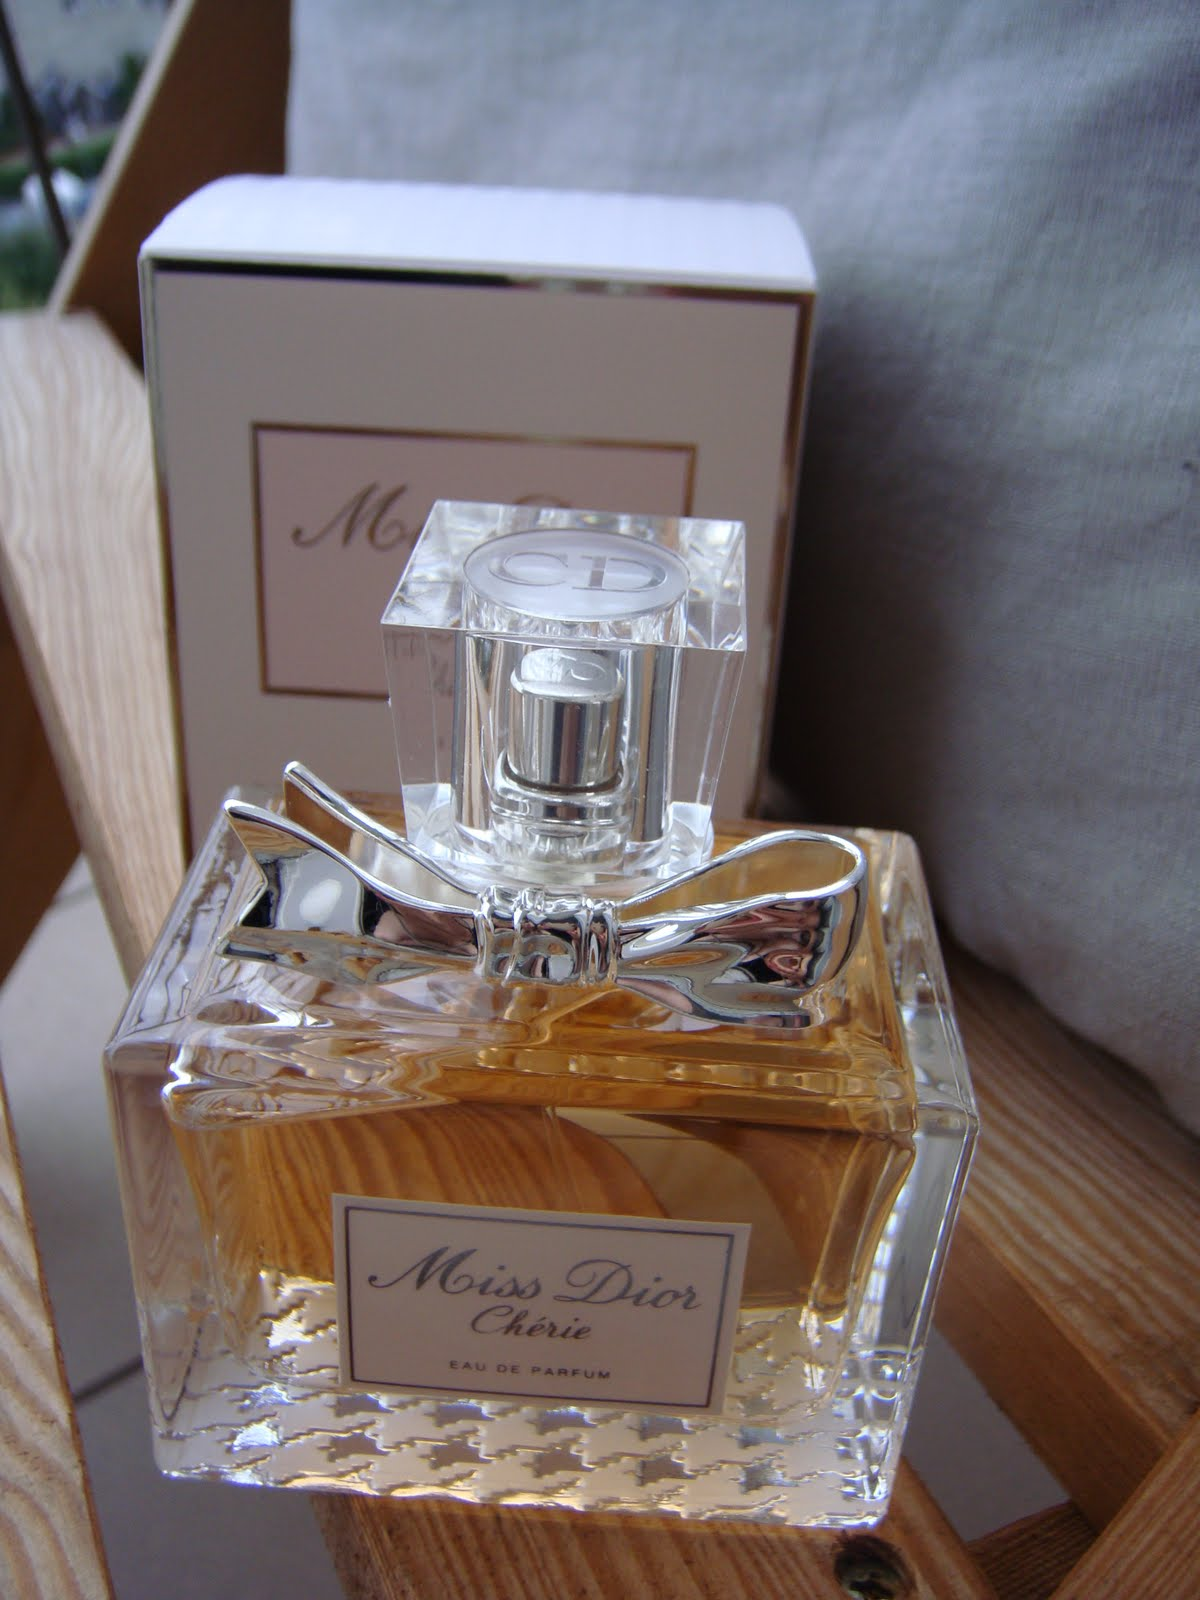 Early Birthday Present For Myself Miss Dior Cherie Perfume